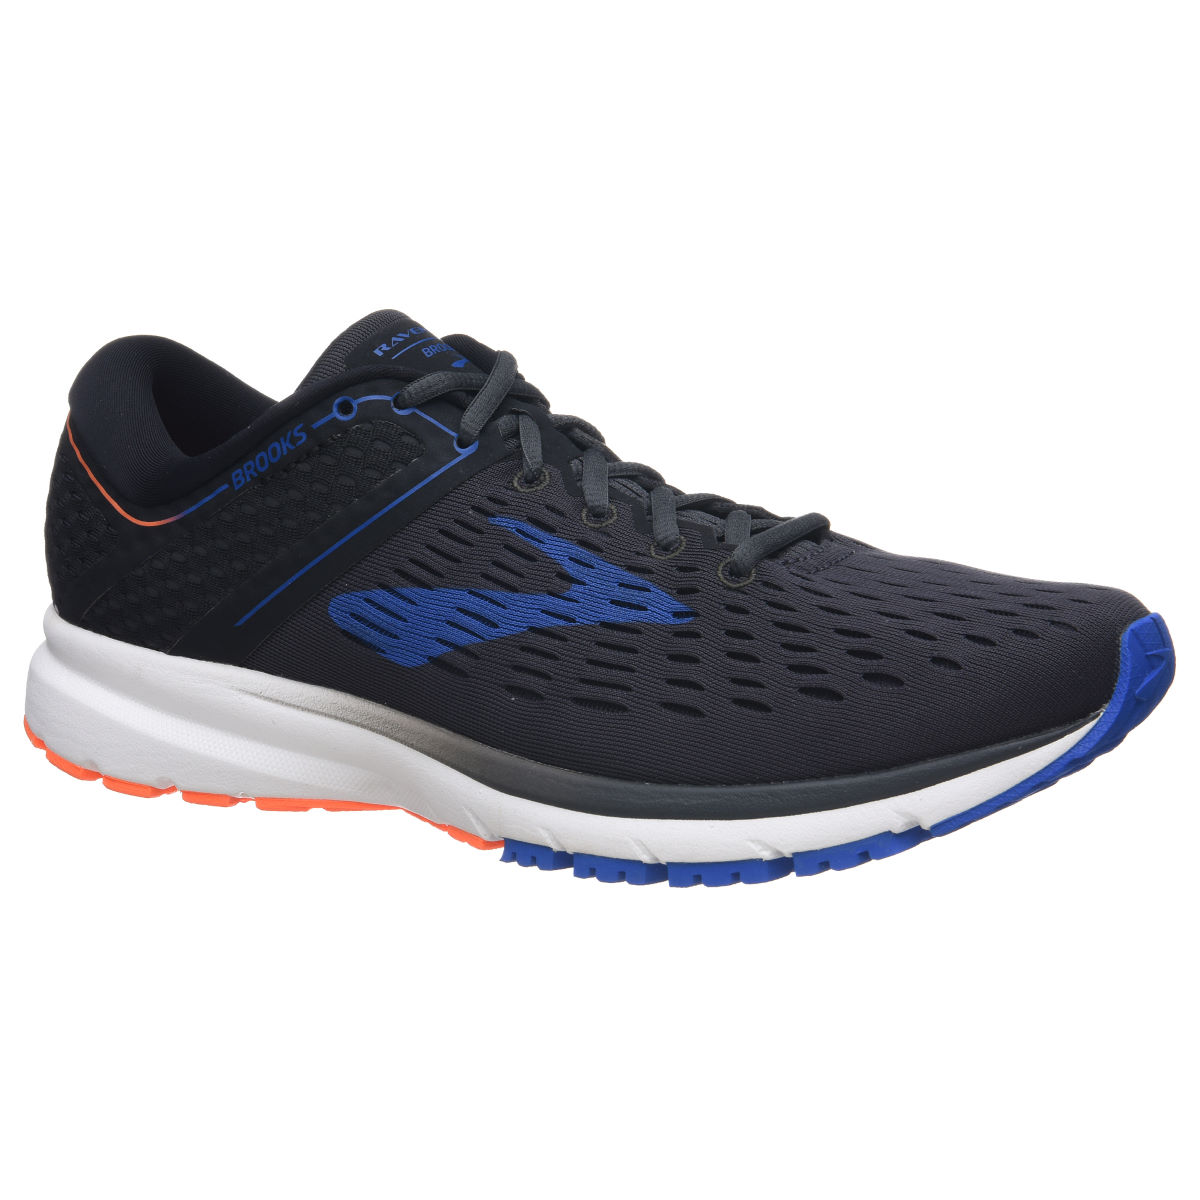 Brooks Ravenna 9 Shoes - Zapatillas de running